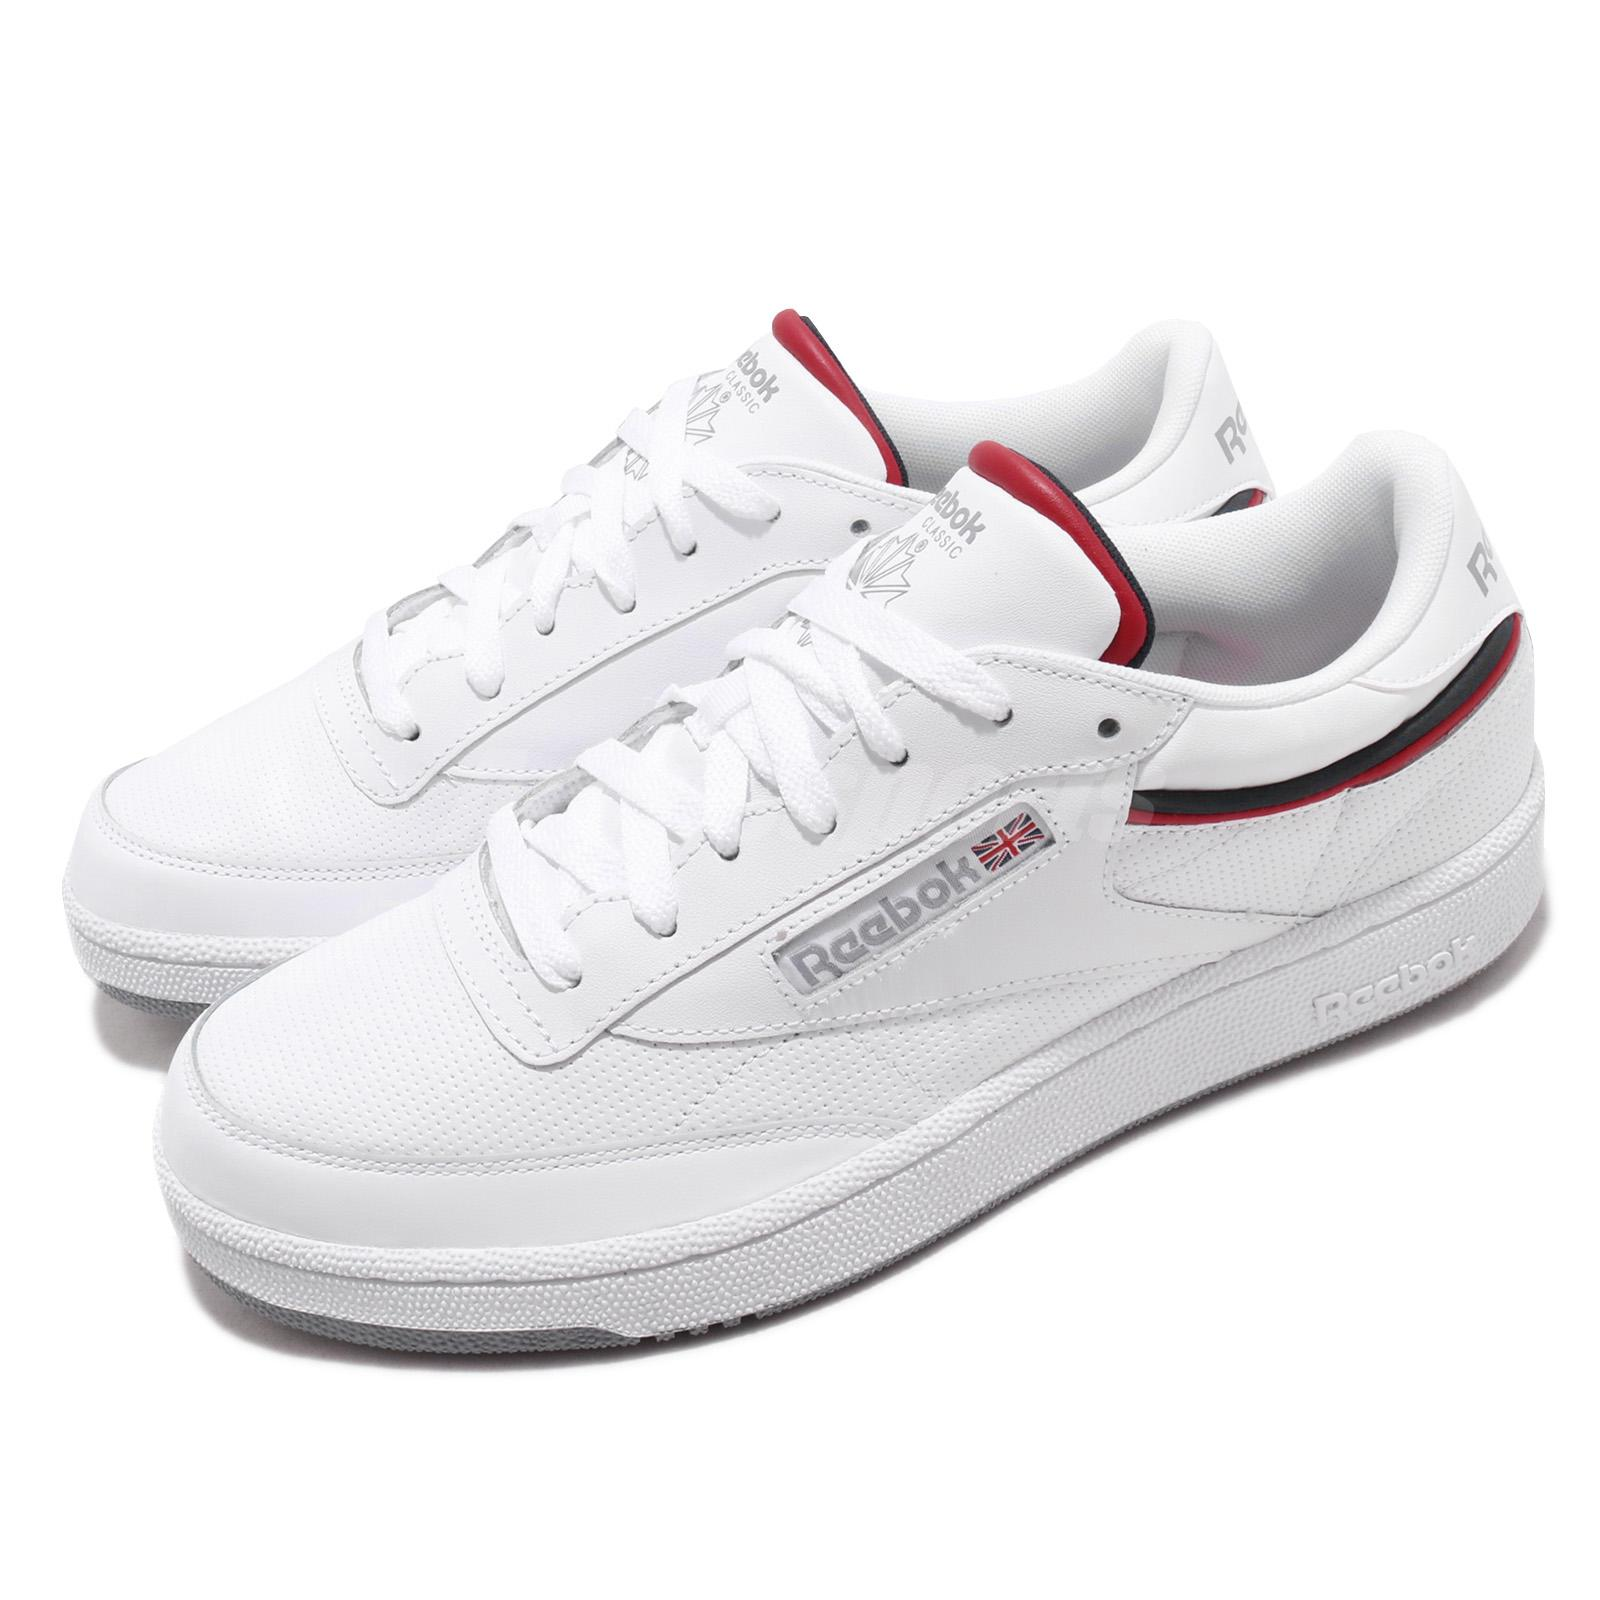 d4407fbf Details about Reebok Club C 85 MU White Navy Red Men Classic Casual Shoes  Sneakers CN3761